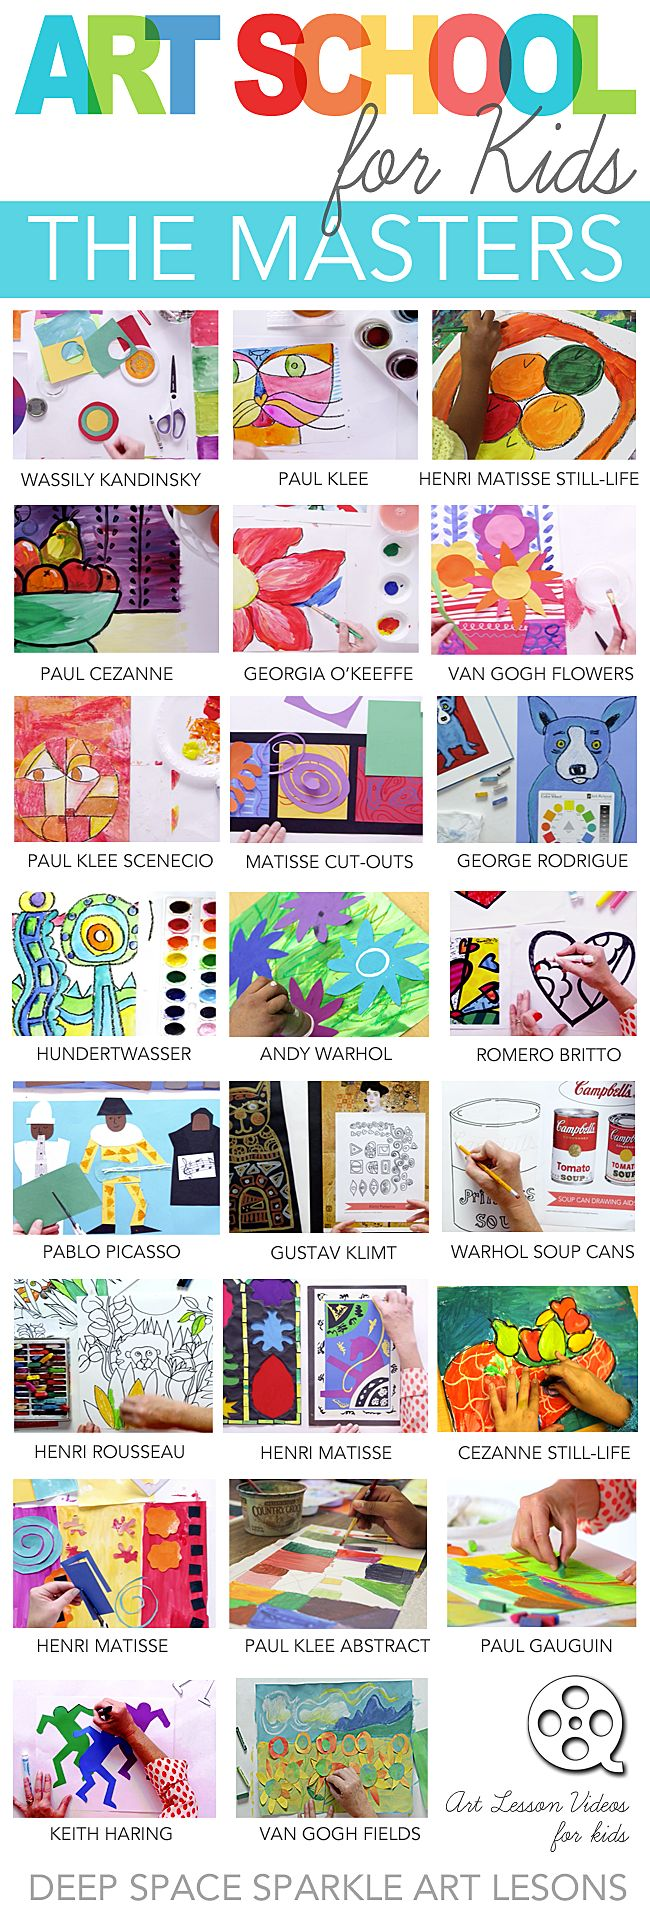 Tried and true art lesson plans and videos for elementary school that feature more than 15 Art Masters that resonate with kids.  Art School for Kids online art classes.